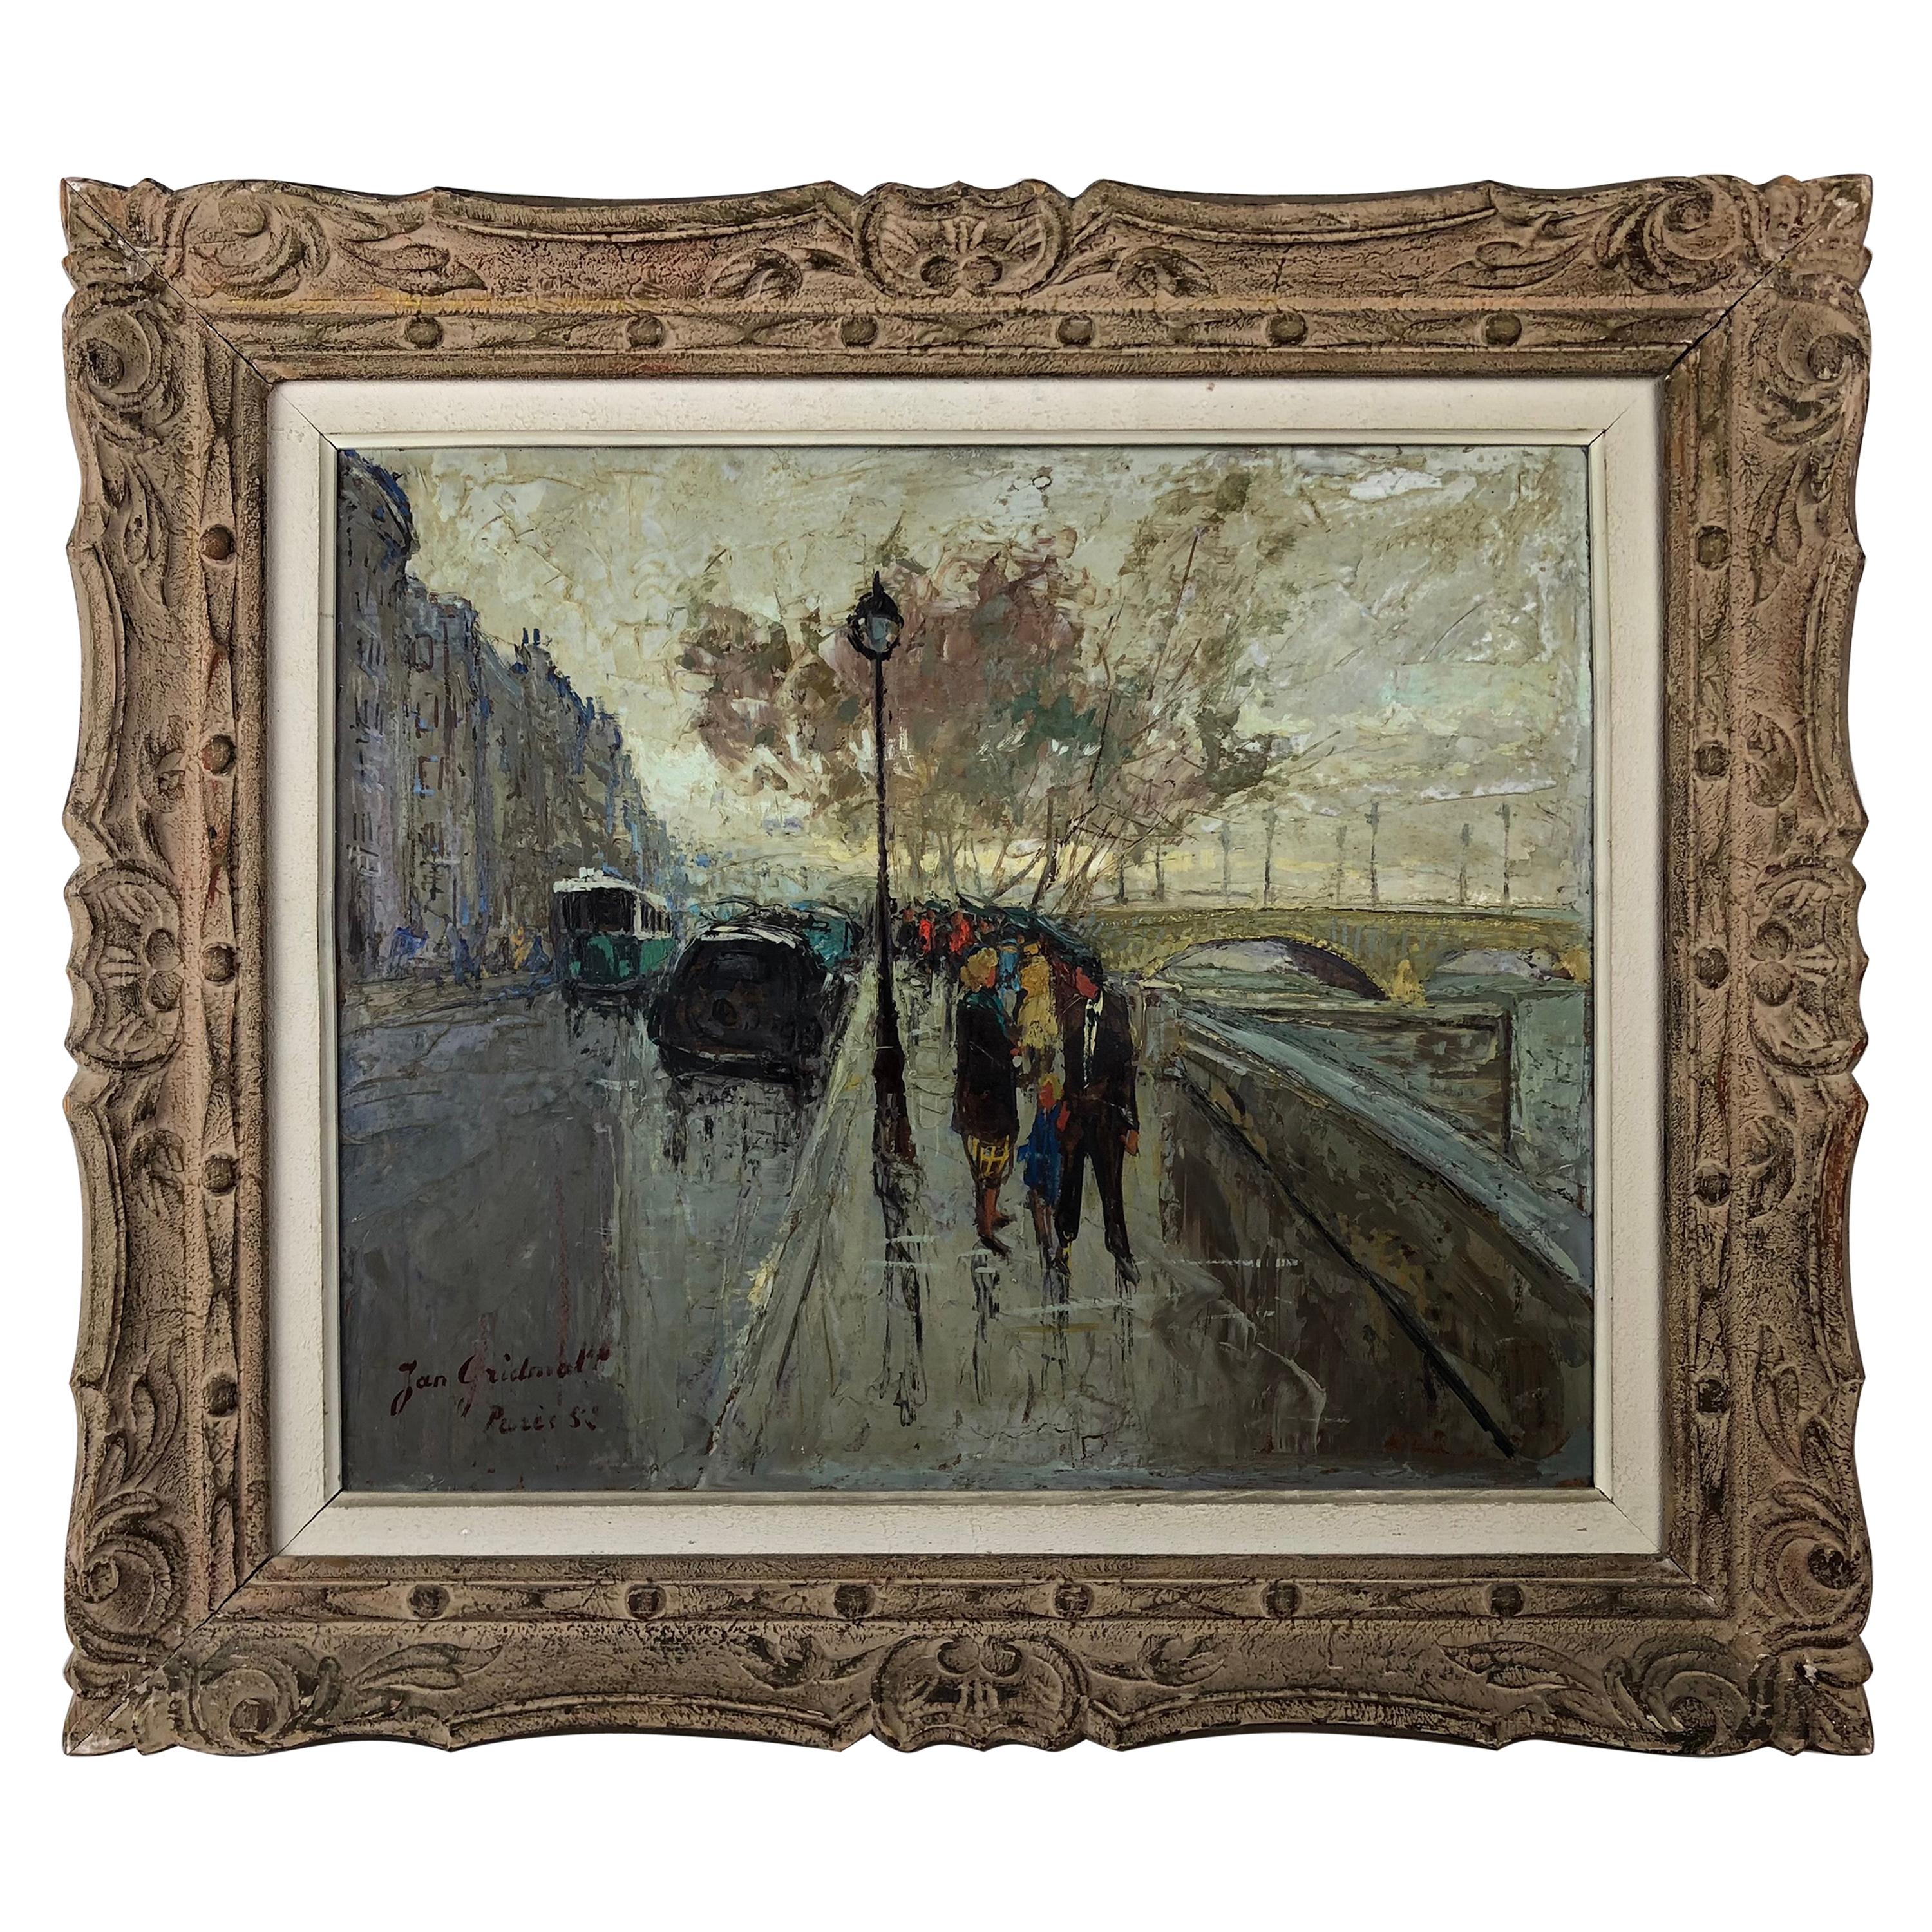 Original Oil Painting Paris Street Scene by Jan Gridmall, Signed and Dated 1952